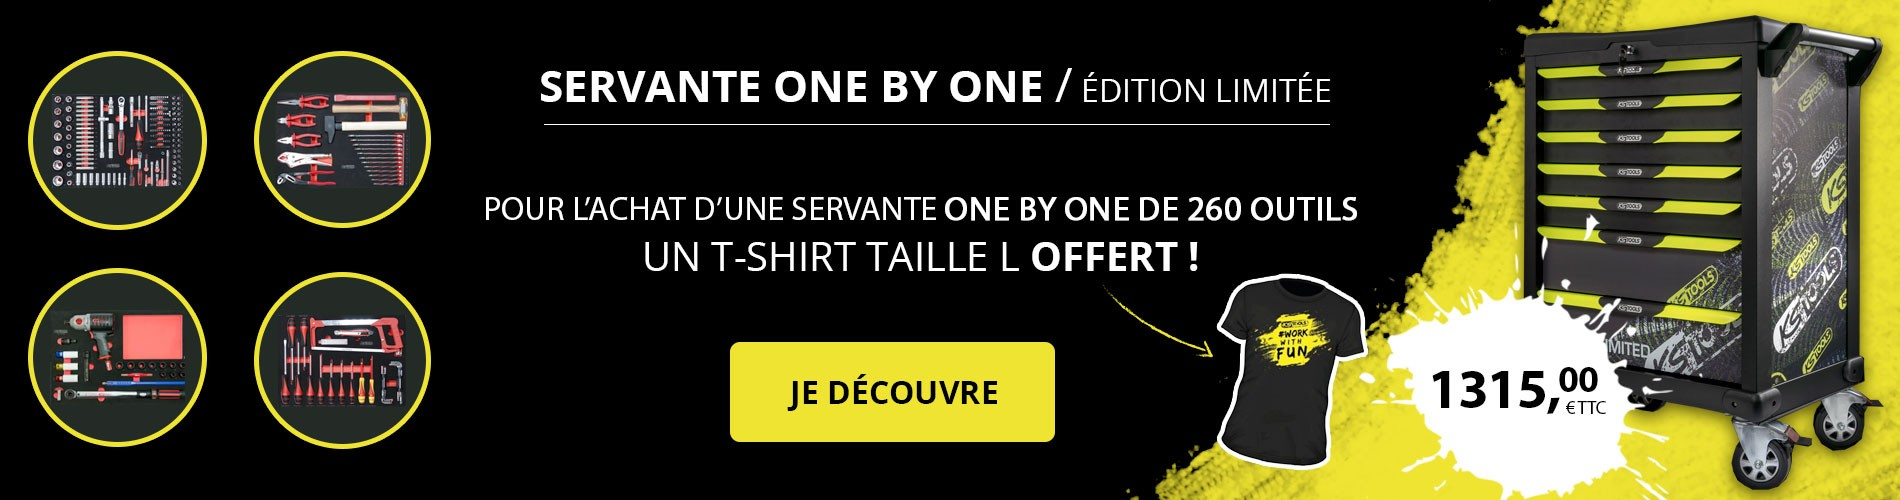 Servante one by one KS Tools complète 260 outils